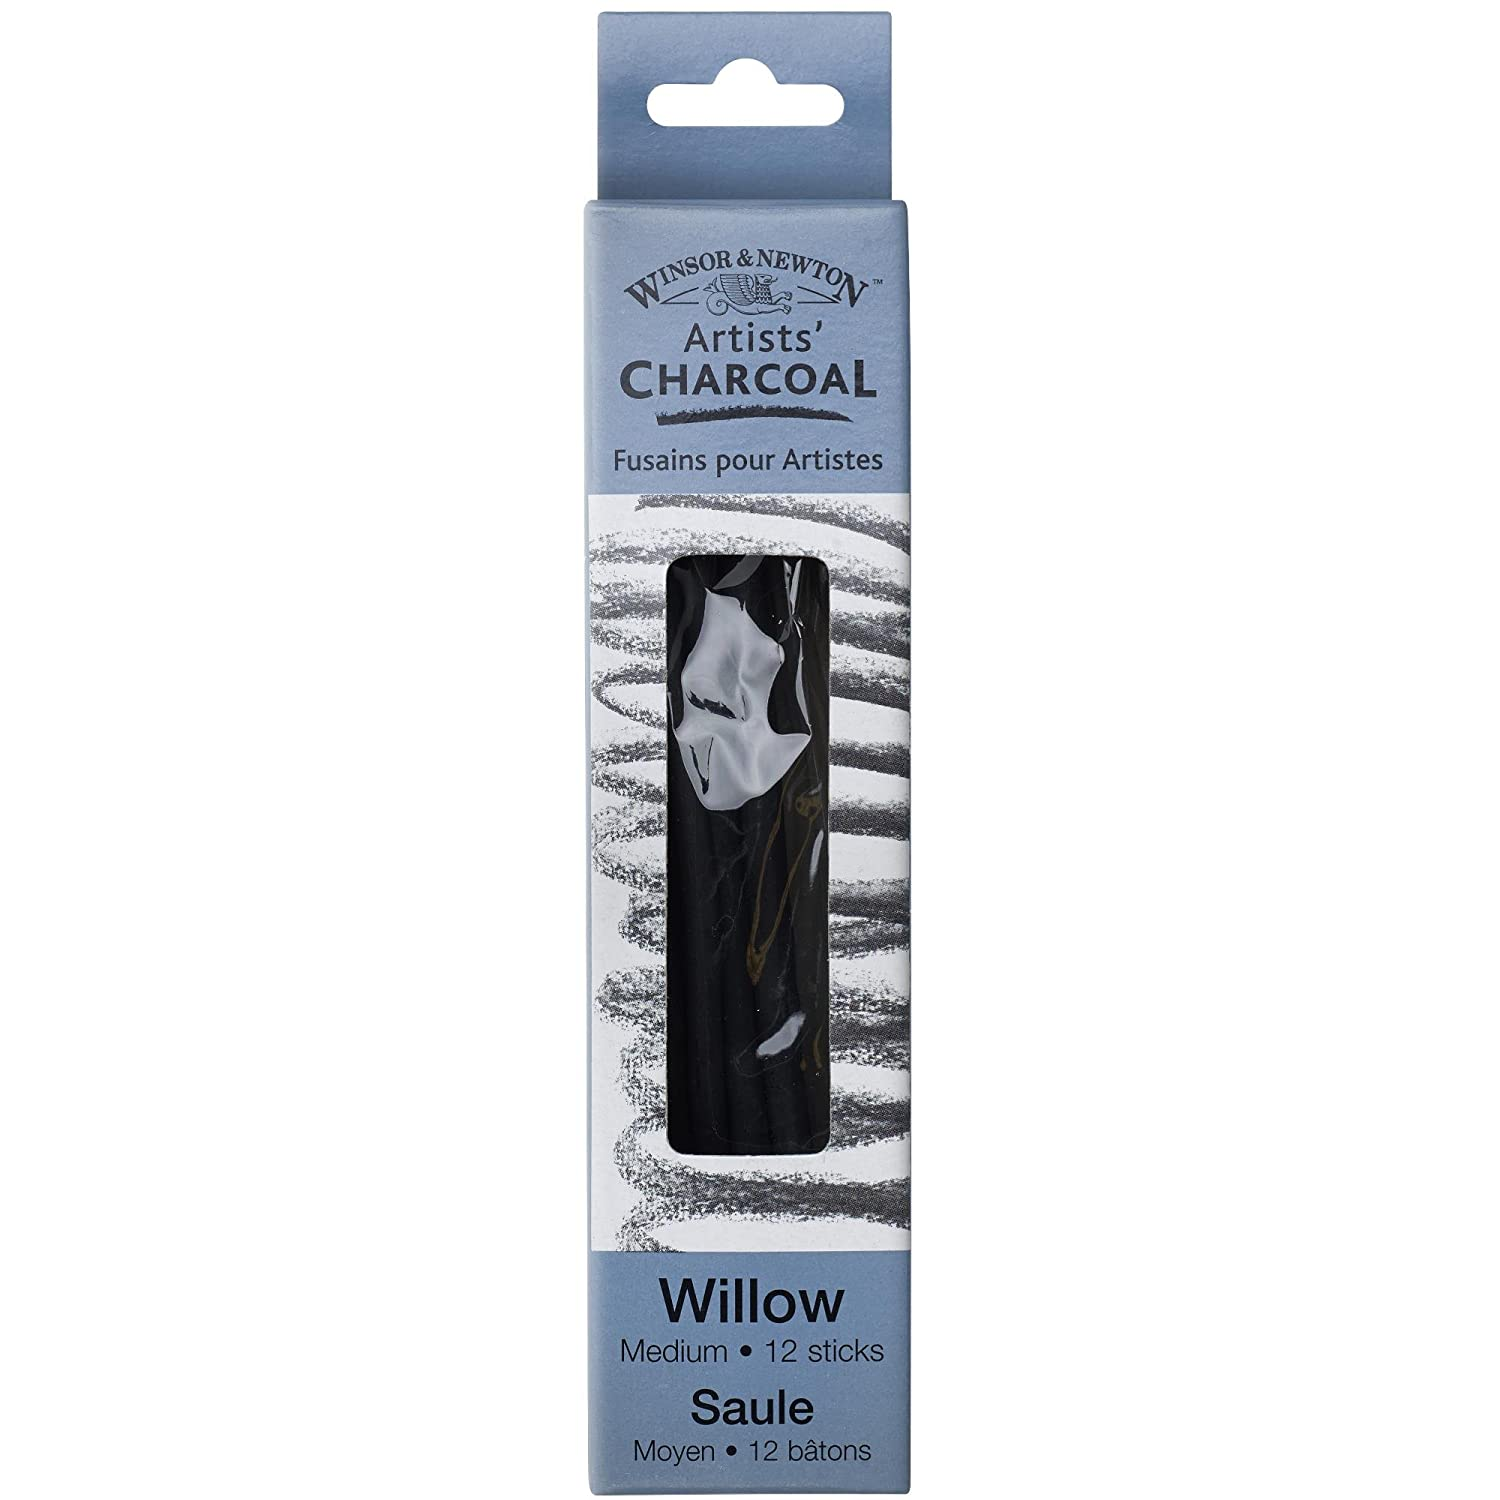 Winsor & Newton 7005170 Artists' Willow Charcoal (Box of 3 Sticks), Medium